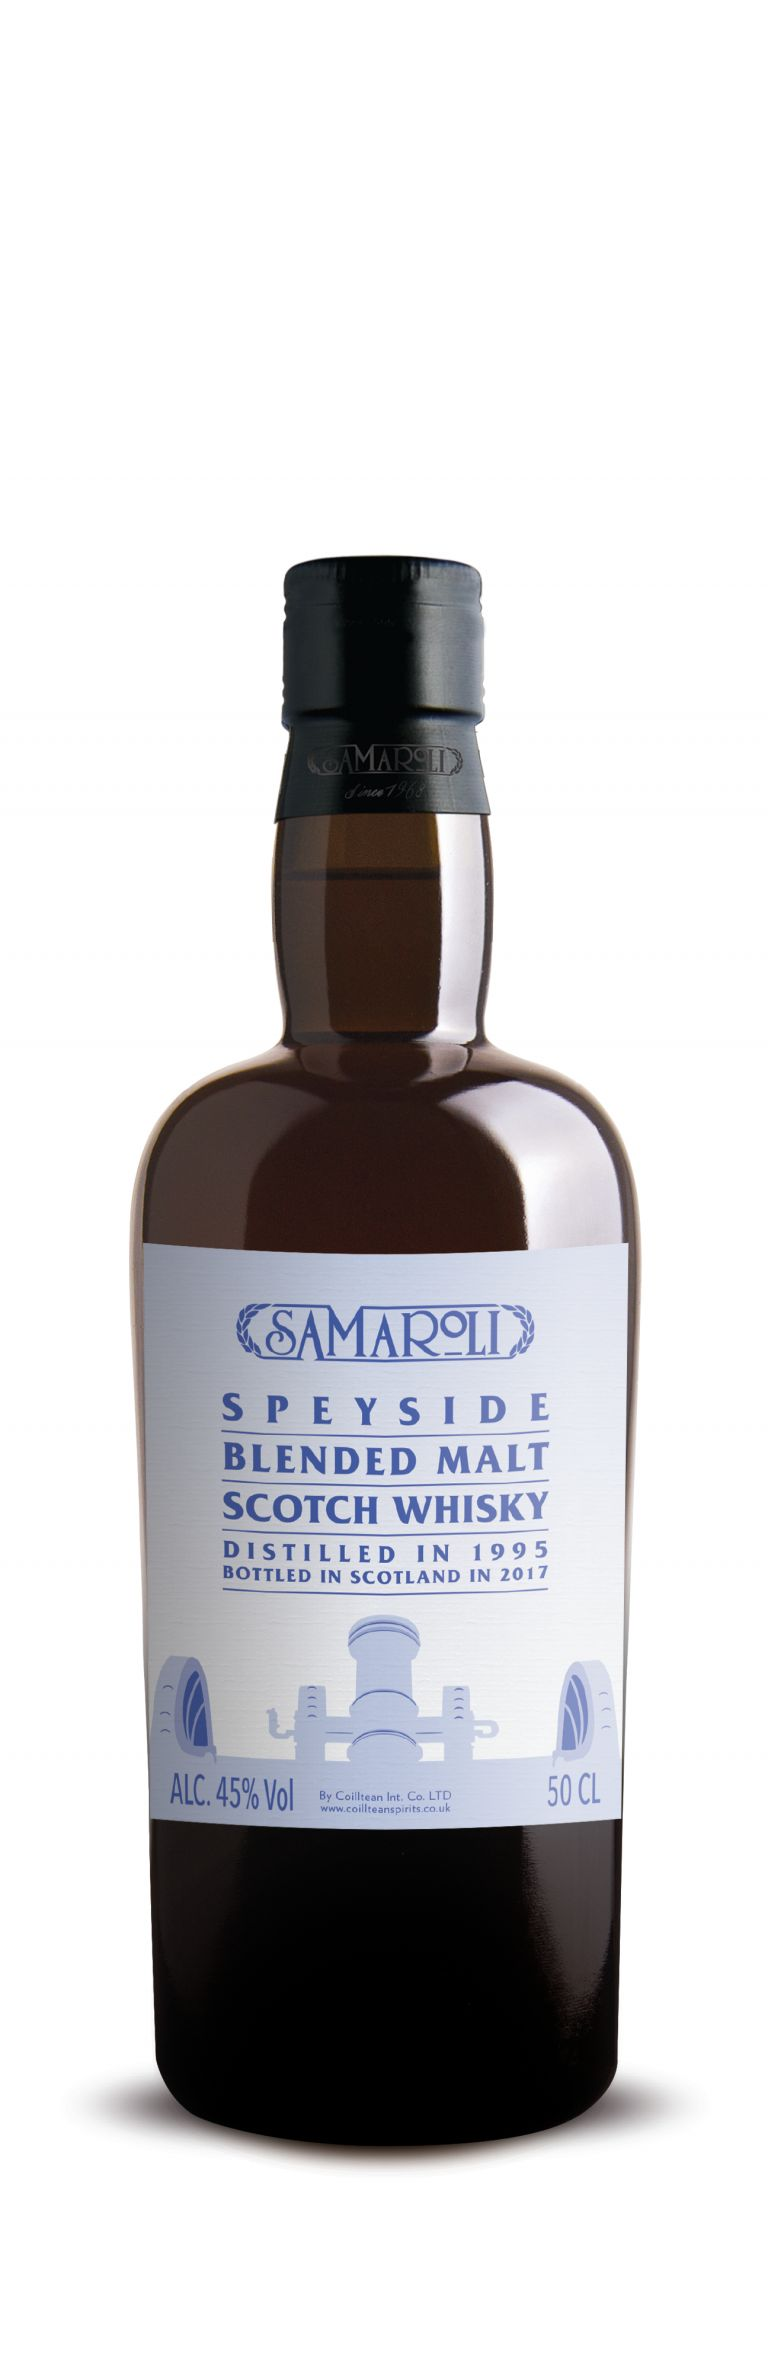 1995 Speyside - Blended Malt Scotch Whisky - ed. 2017 - 50 cl